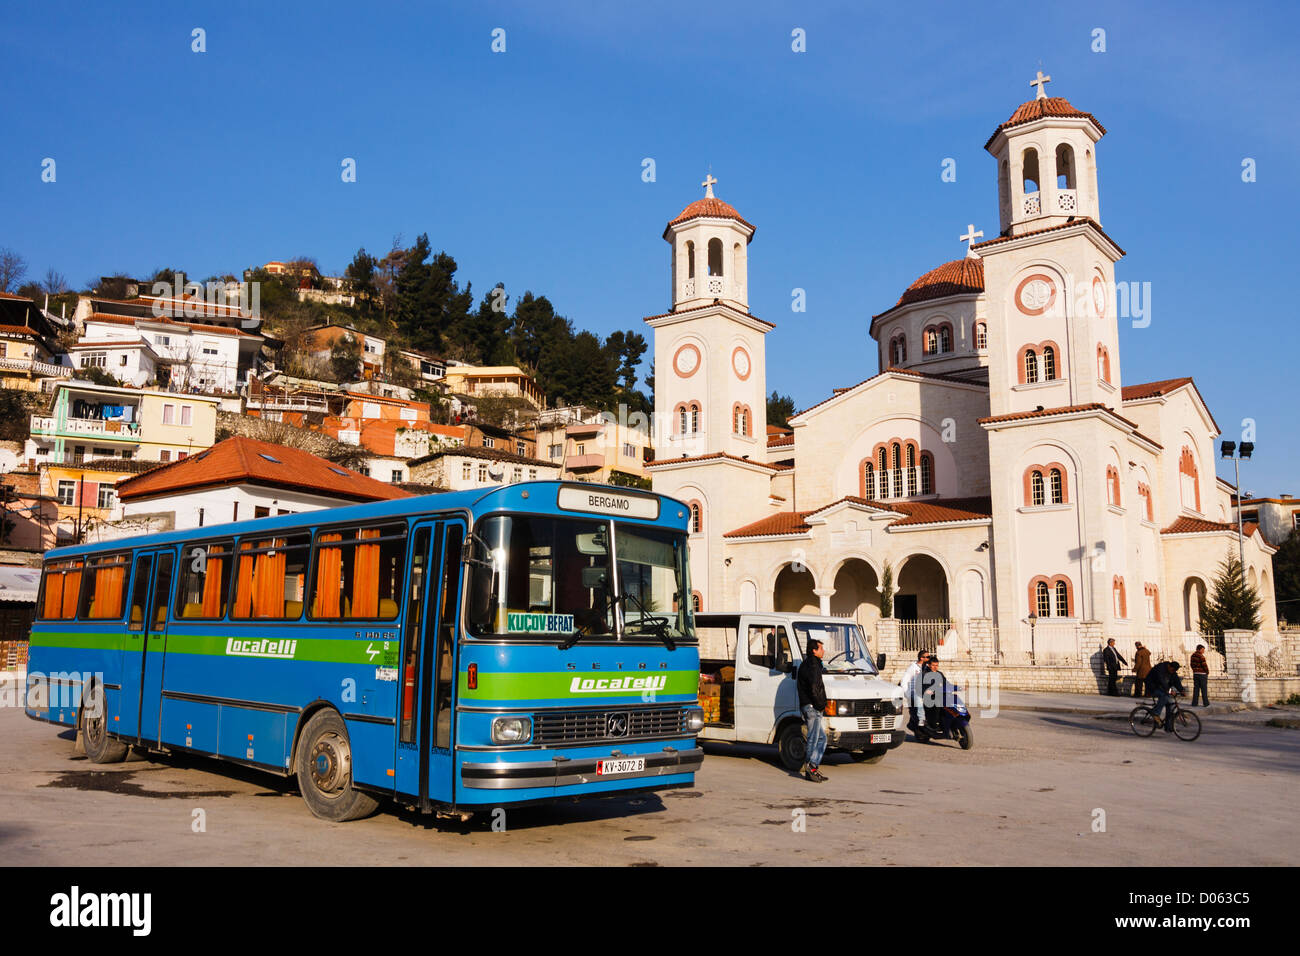 Orthodox Cathedral of St. Demetrius and bus stand with old coach. Berat Main Square, Albania - Stock Image